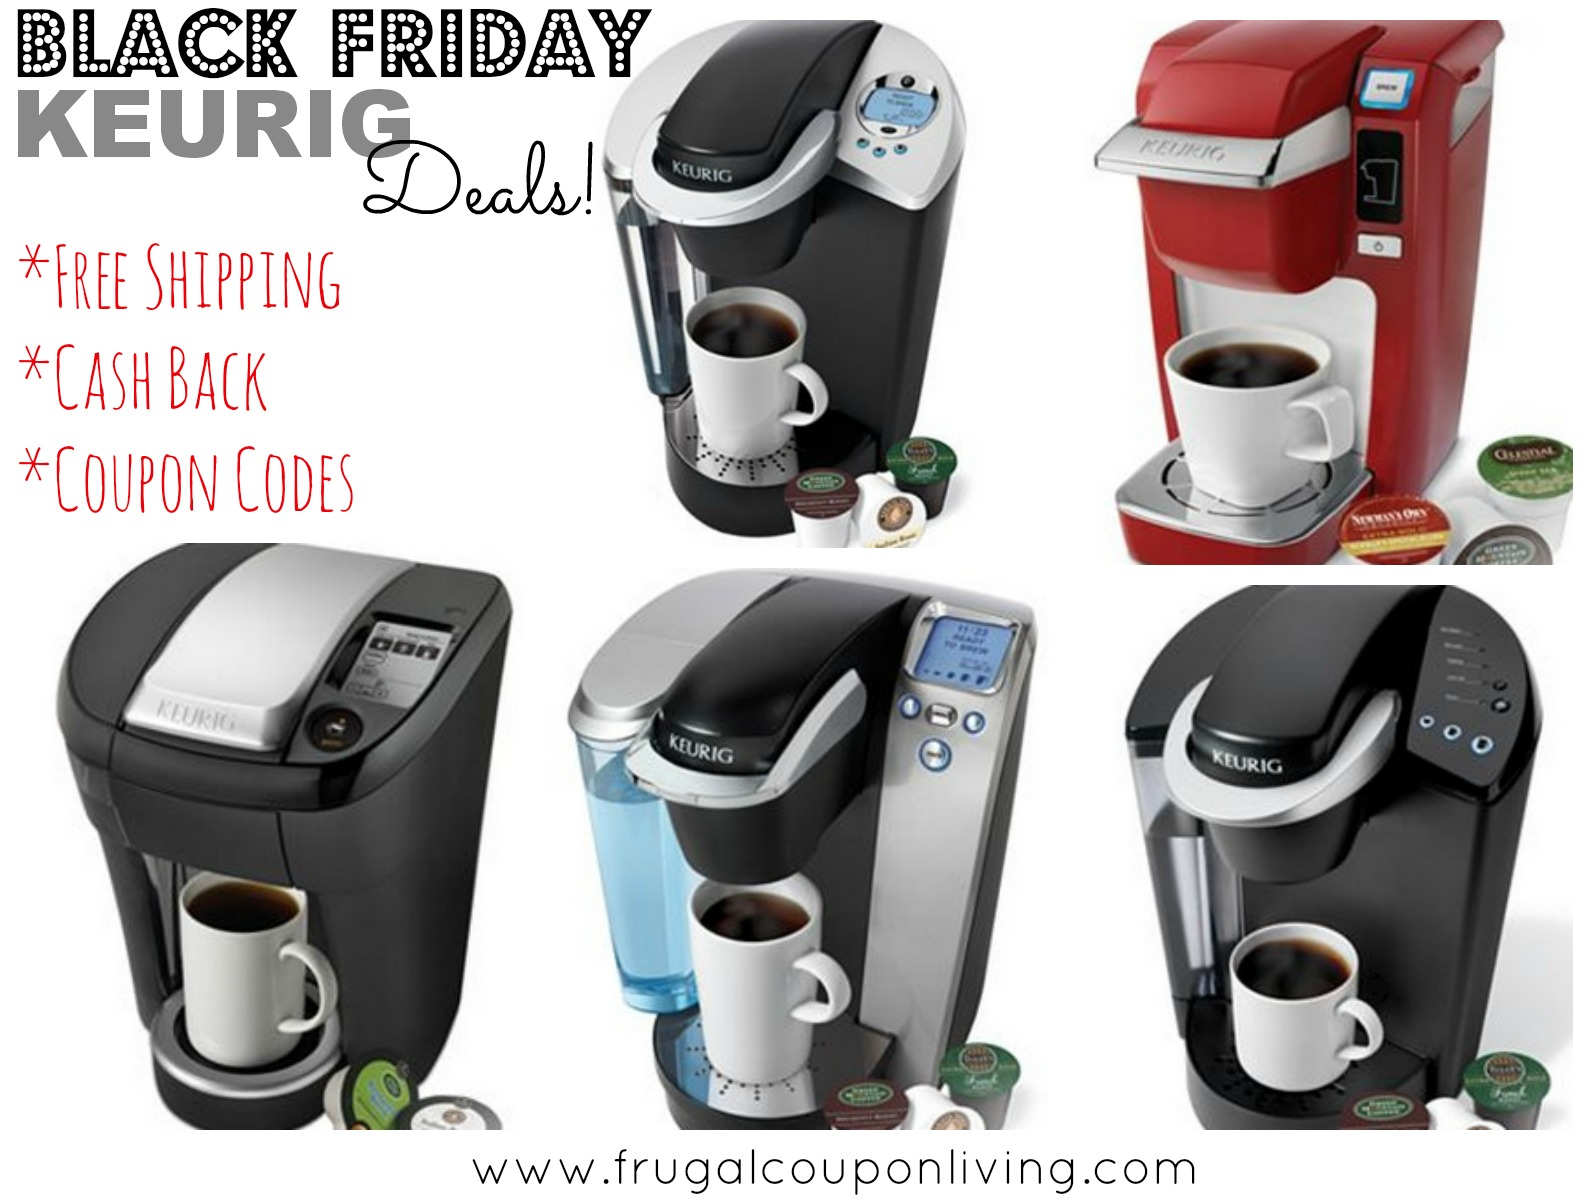 Find And Compare All The Best Black Friday Deals On Keurig Coffee Makers On Sale. Shopping; Business; Todays best deals. Search for Keurig Coffee Makers On Sale deals. Discover millions of products at fantastic prices with us. We compare millions of products from around the web so you can find the best deal available! We combine amazing.